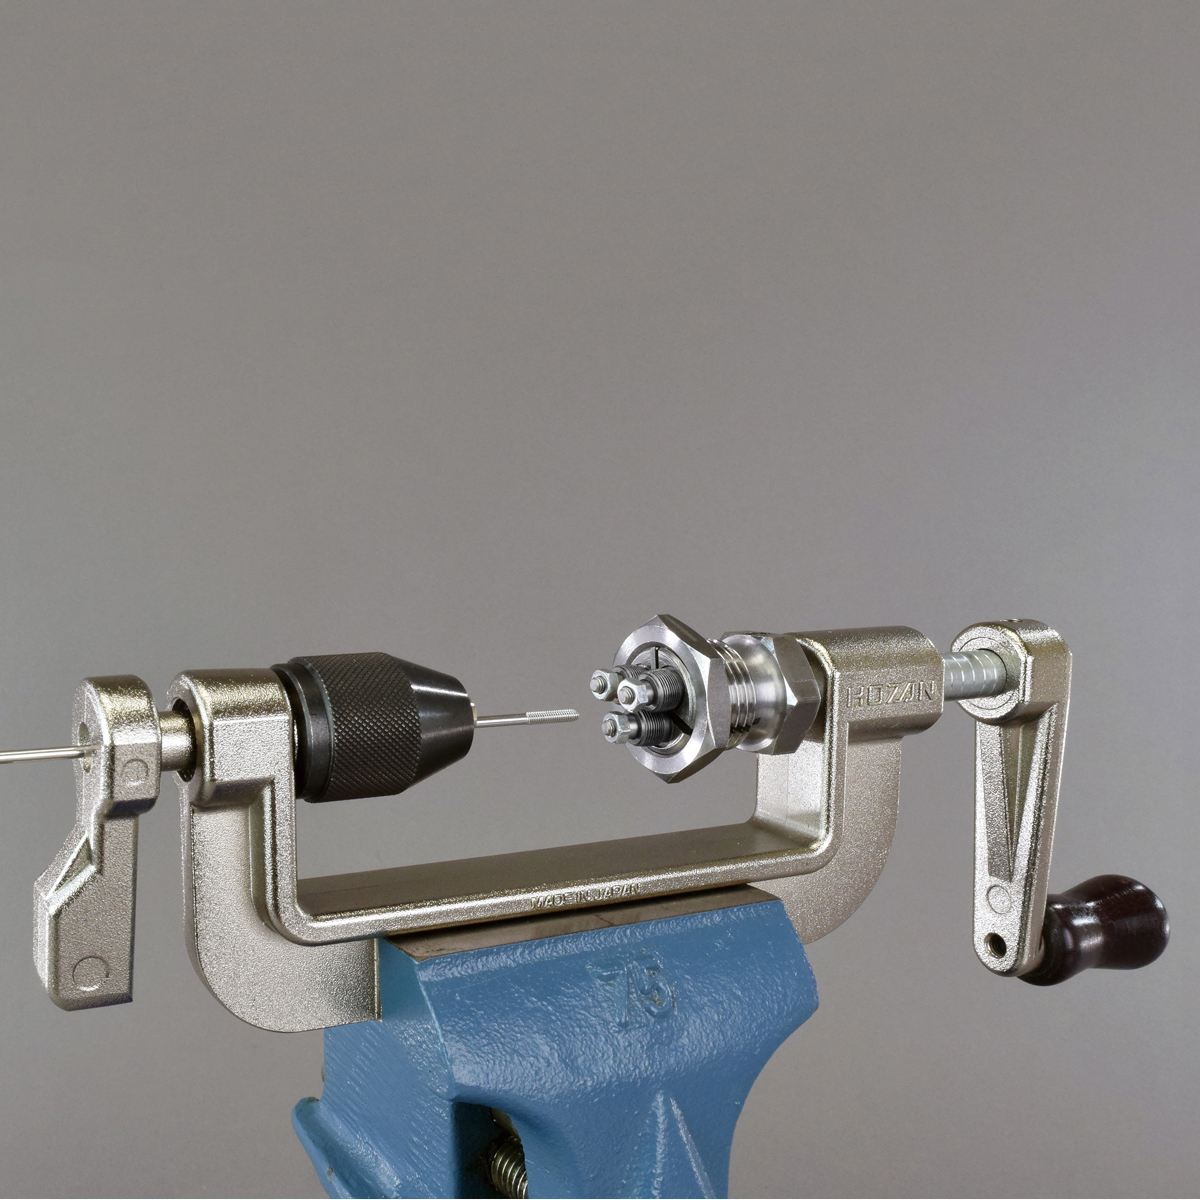 hozan spoke wire machine c702 for vice clamp with thread cutter 13gbc23 silver